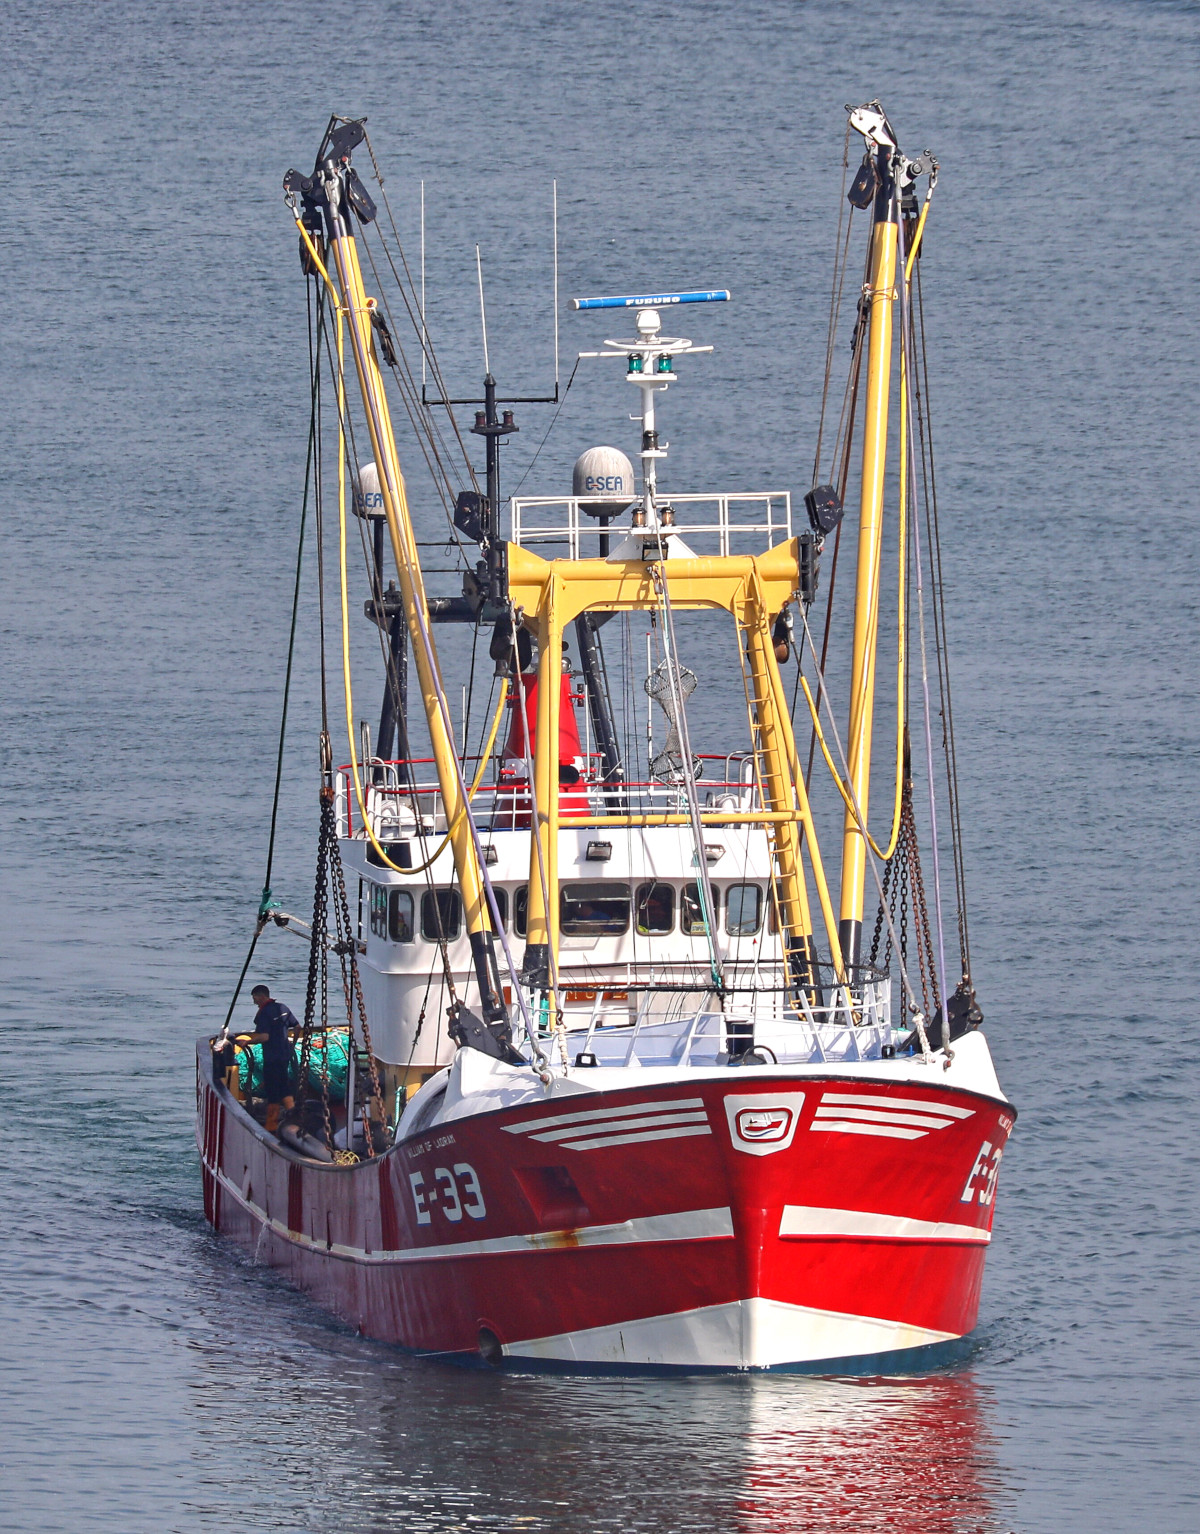 William of Ladram returning to Brixham at the end of another beam trawling trip. (Alan Letcher)